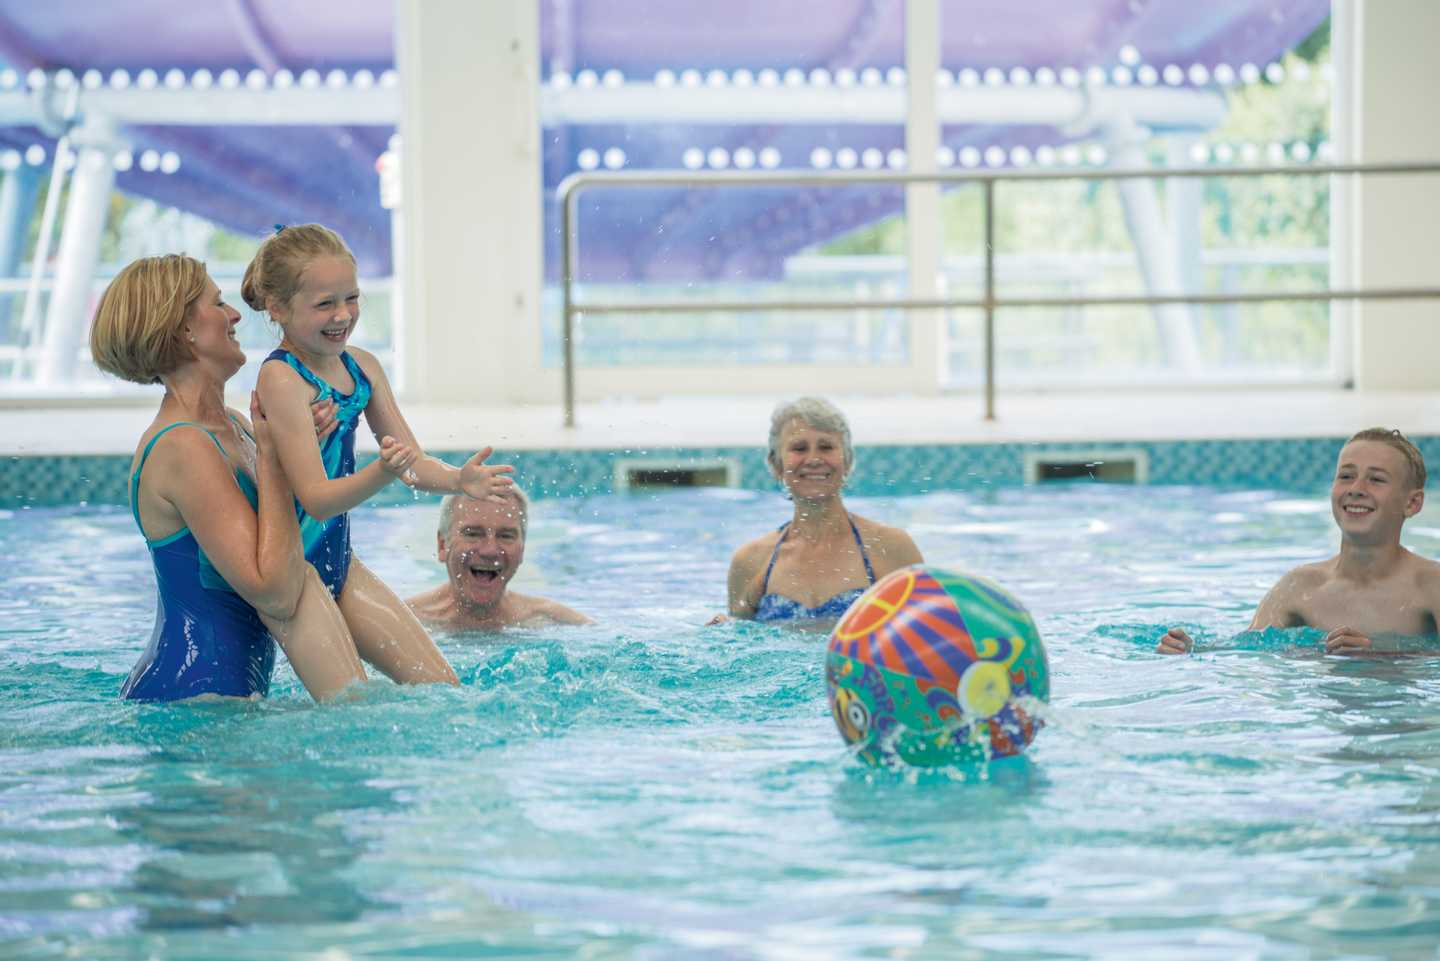 Family splashing about in the heated indoor pool